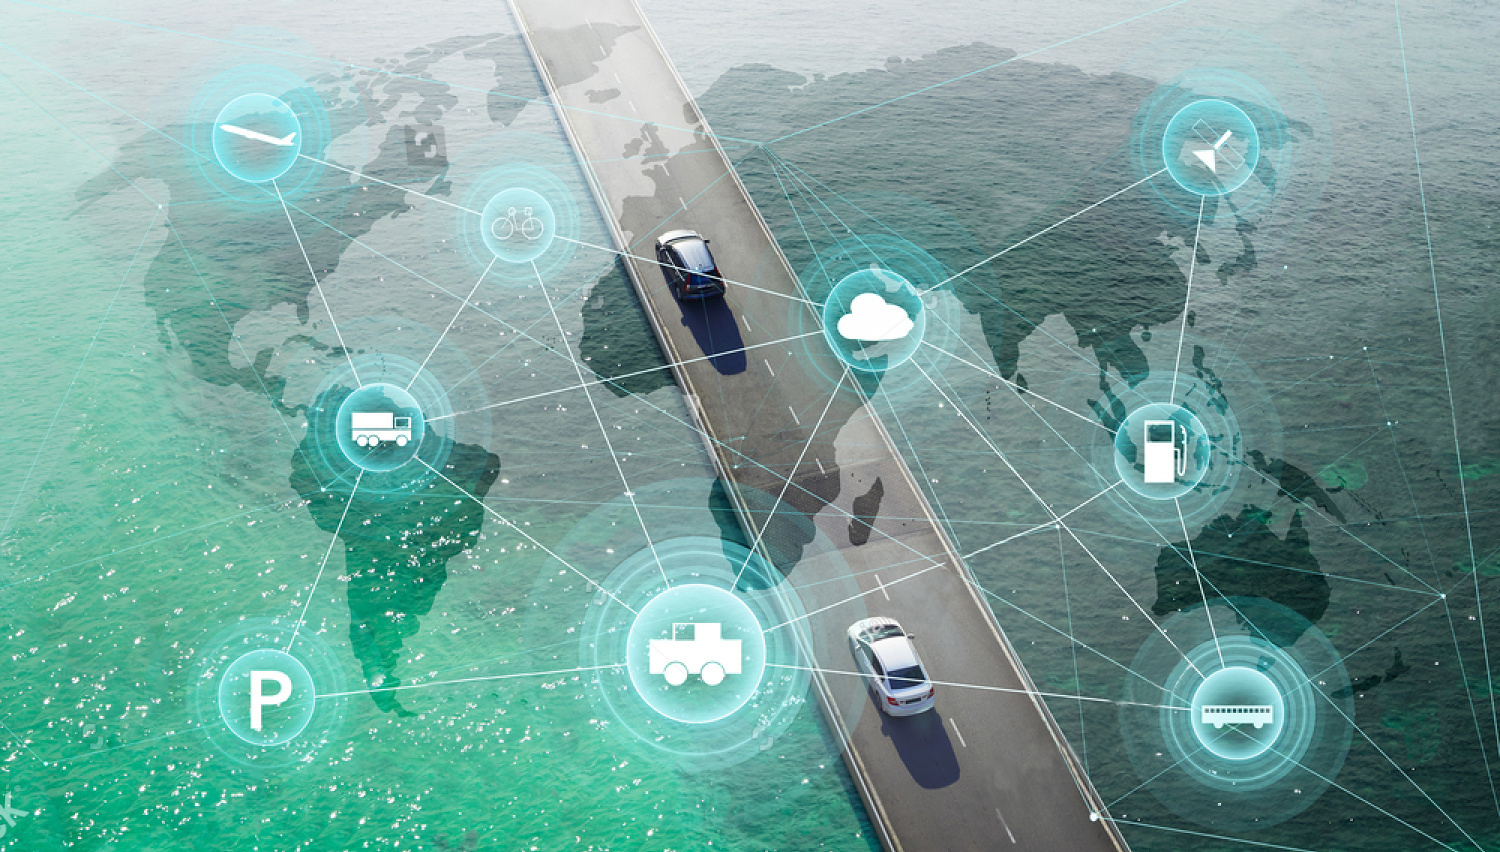 stock-photo-smart-transportation-and-intelligent-communication-network-of-things-wireless-connection-726915283